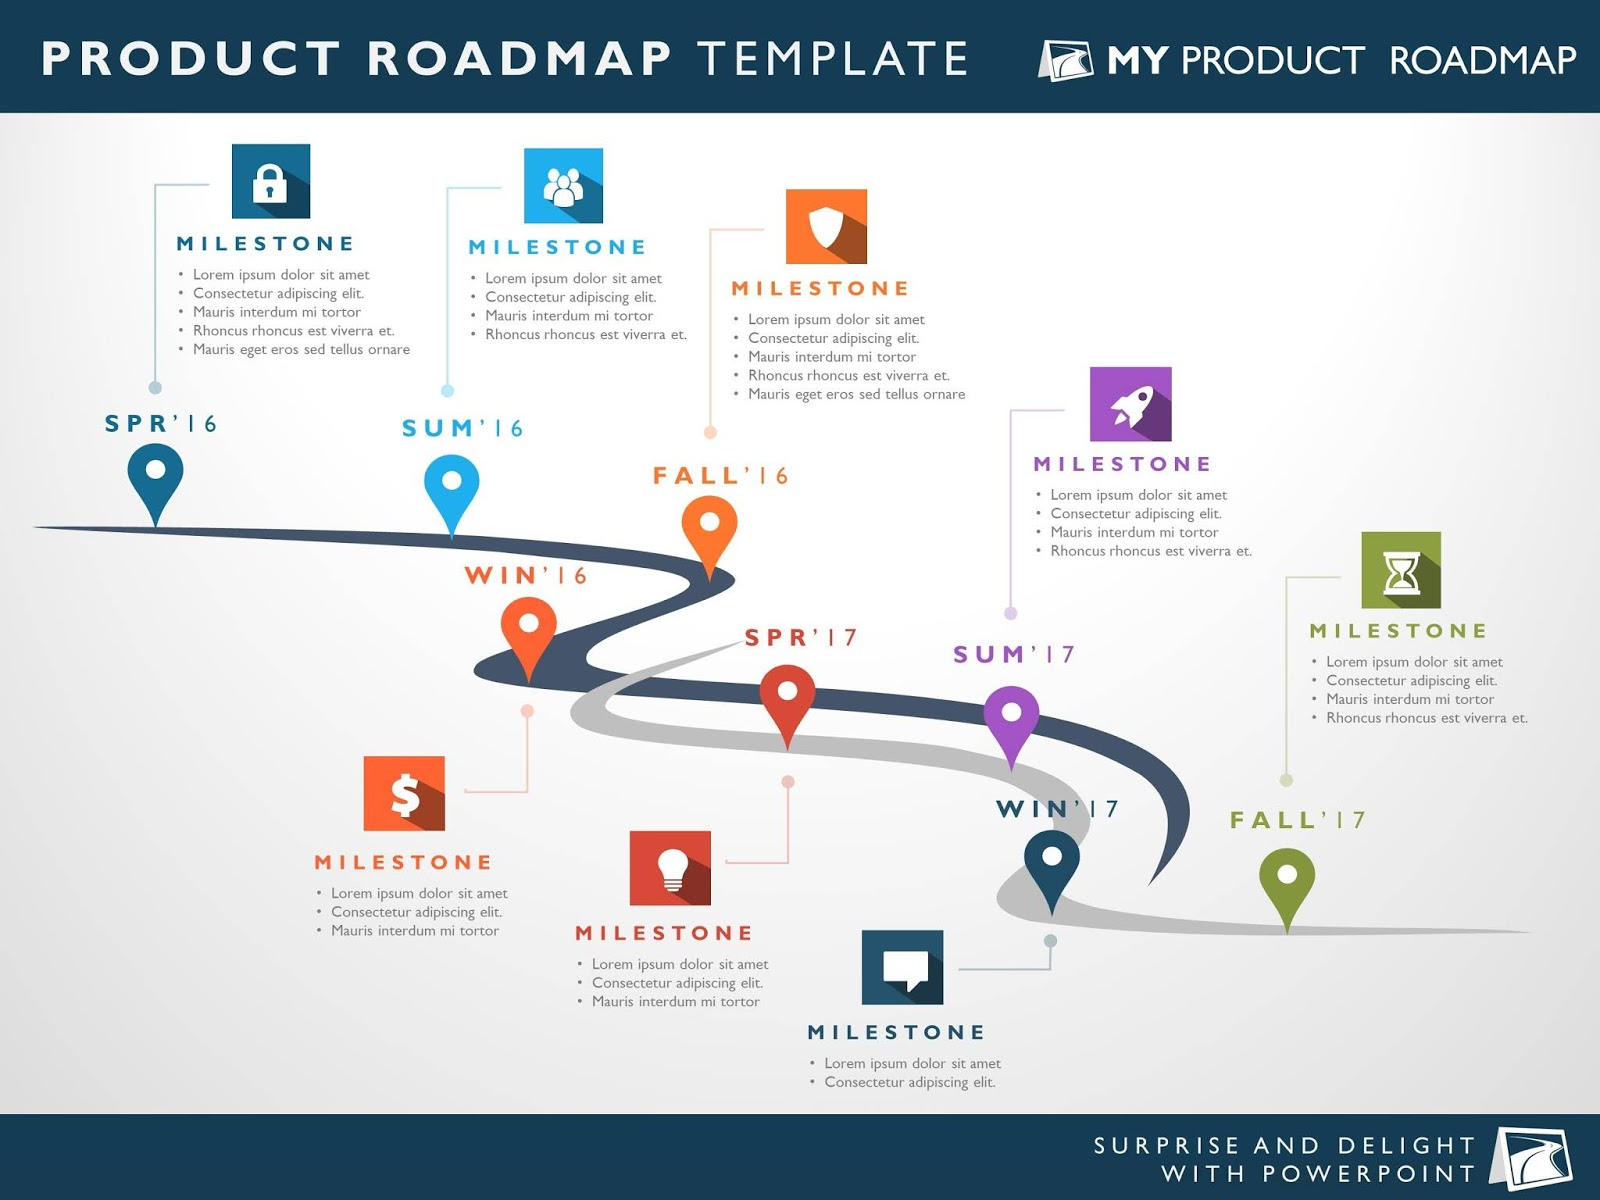 How To Use a Technology Roadmap Template Information Technology Road Map Template on information technology planning template, information technology diagram, technology roadmap template, information technology systems, education course map template, information technology asset management, information technology implementation process, information technology directions template, information technology budget template, information technology documentation template, information security functions, information technology plan template, information technology risk assessment template, information technology cloud, information technology career path, information technology infographics, street map template, website information architecture template, information technology services, information technology strategy template,